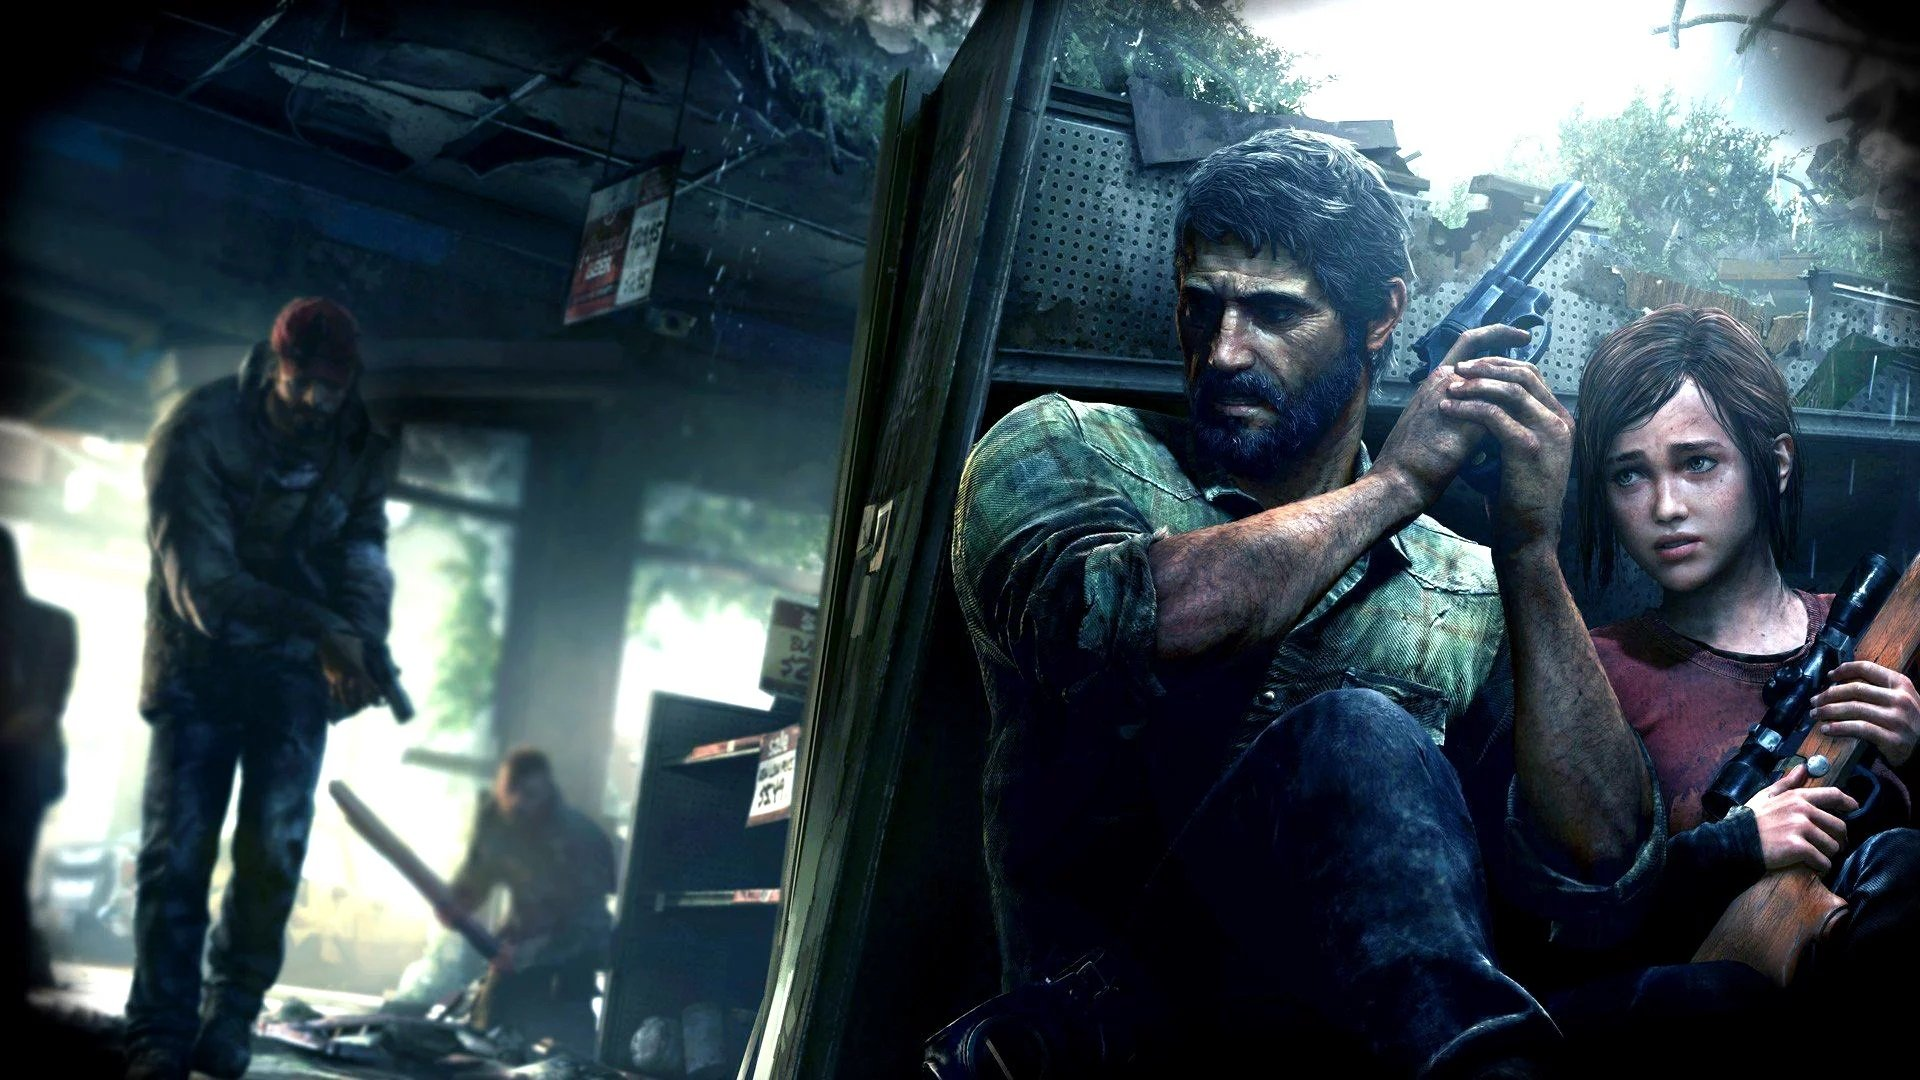 The Last of Us is getting its own HBO TV series screenshot